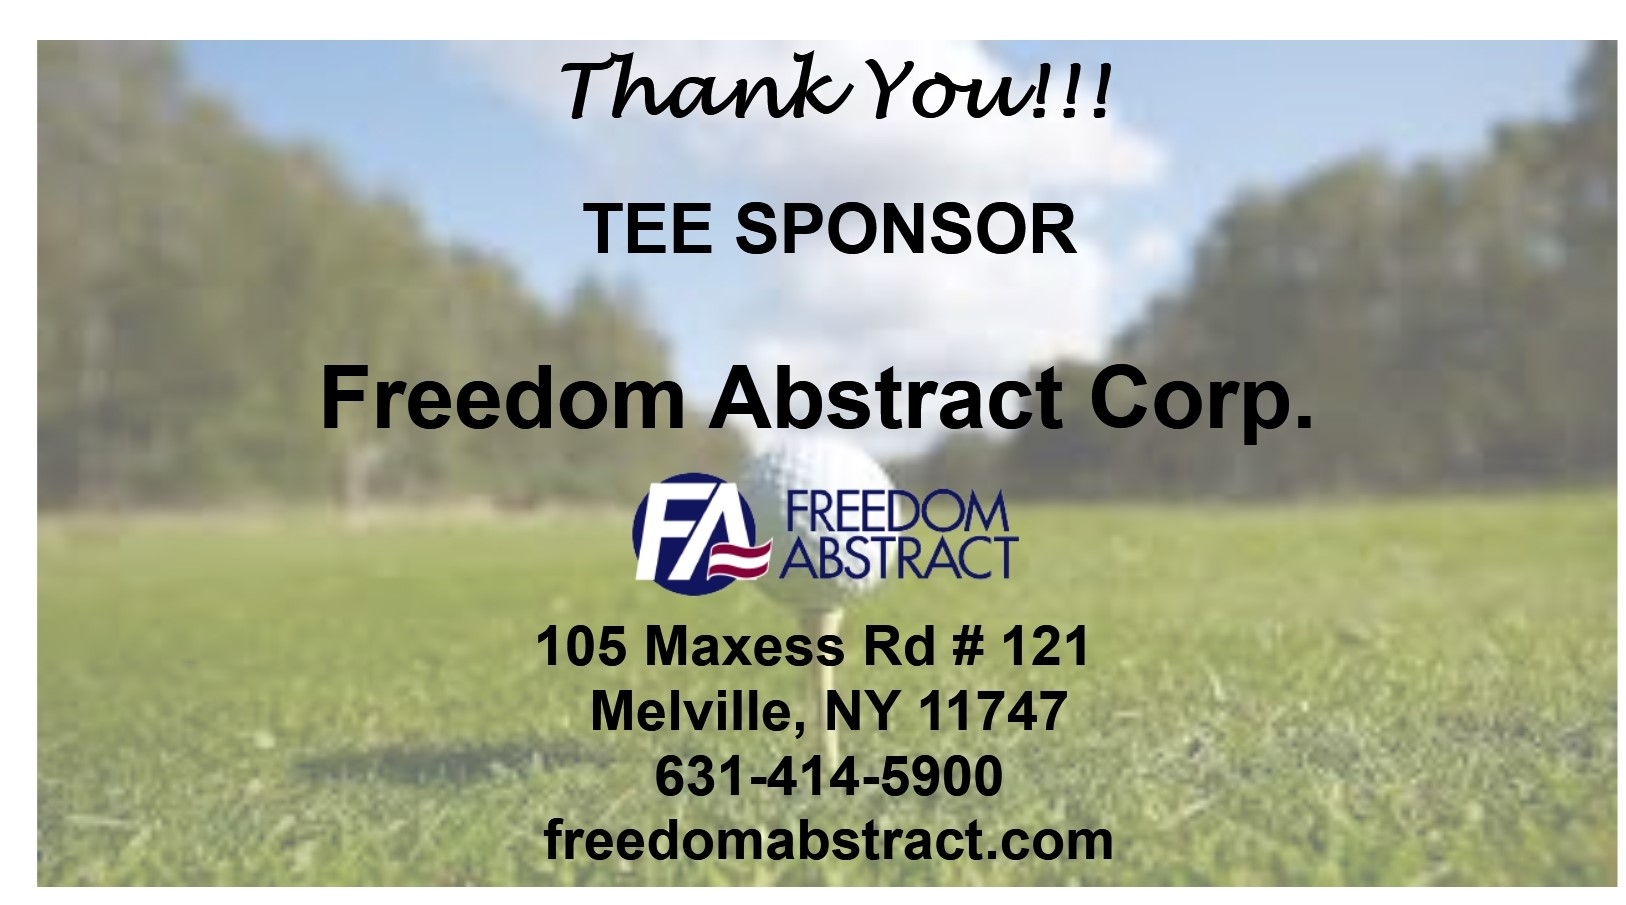 Freedom Abstract Corp.